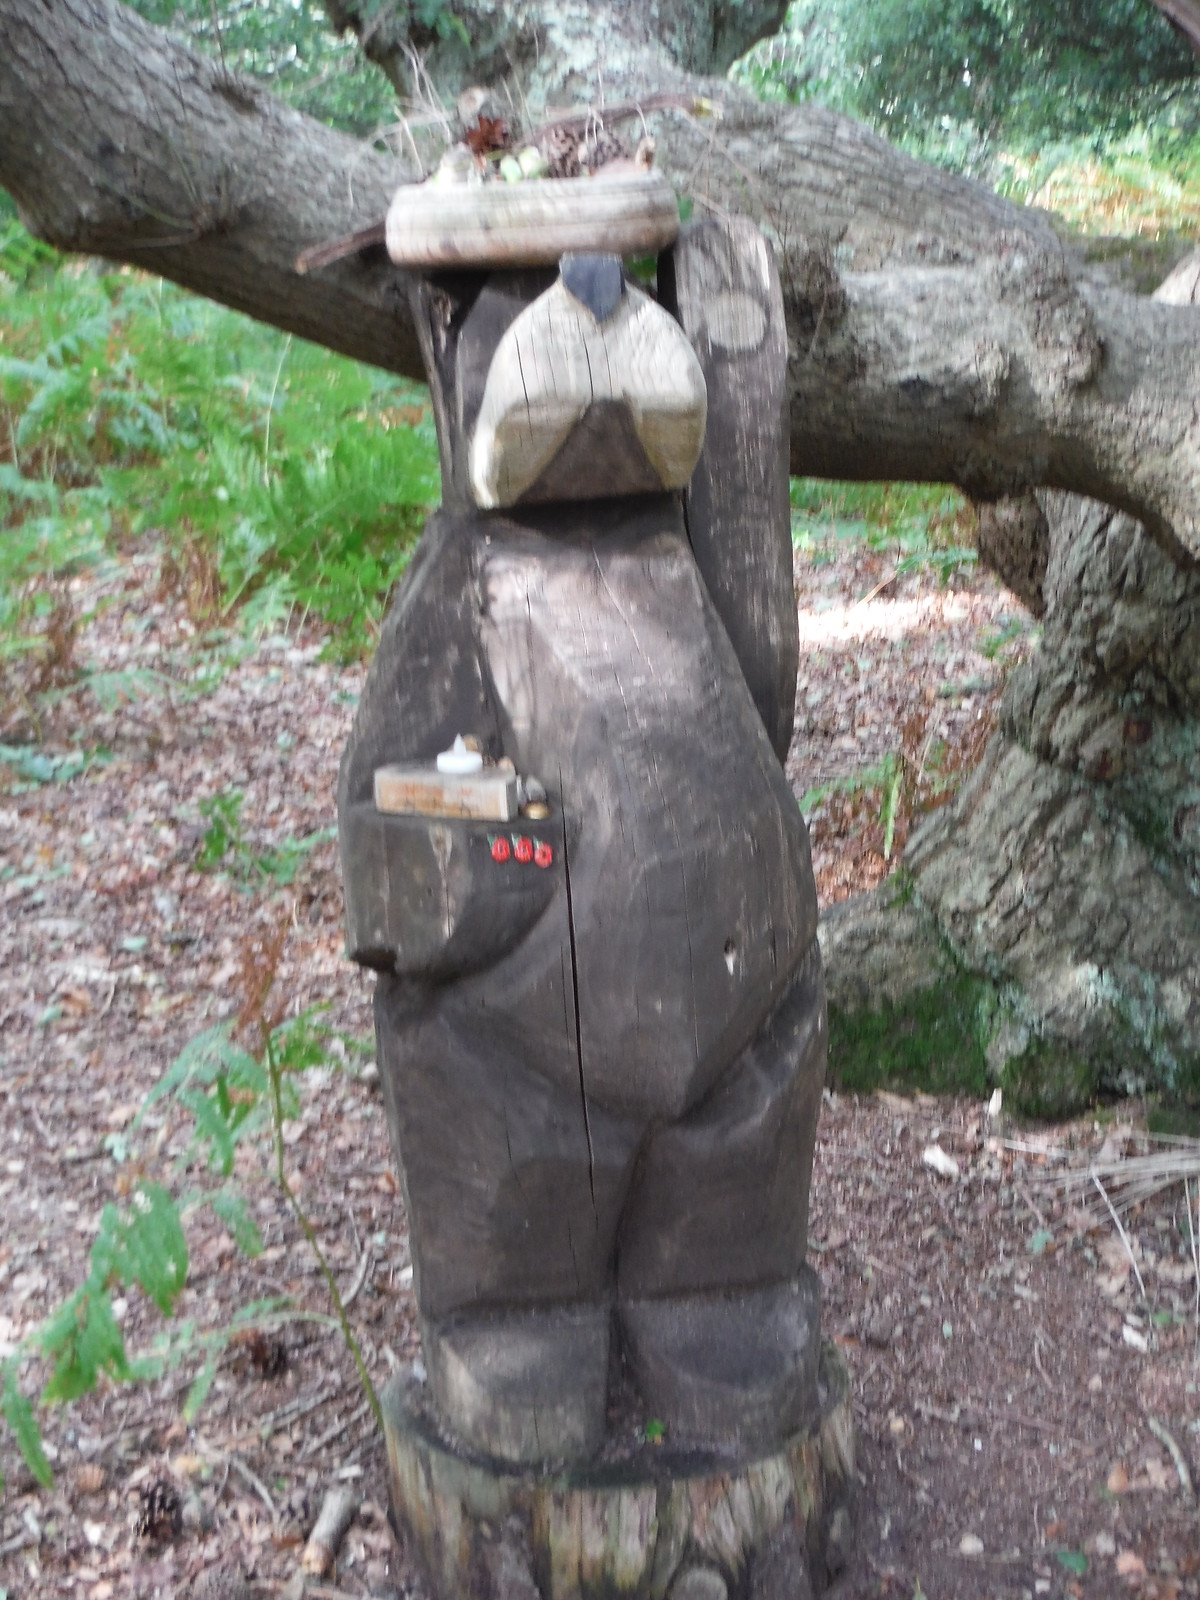 Wooden Sculpture in Fittleworth Common SWC Walk 39 - Amberley to Pulborough